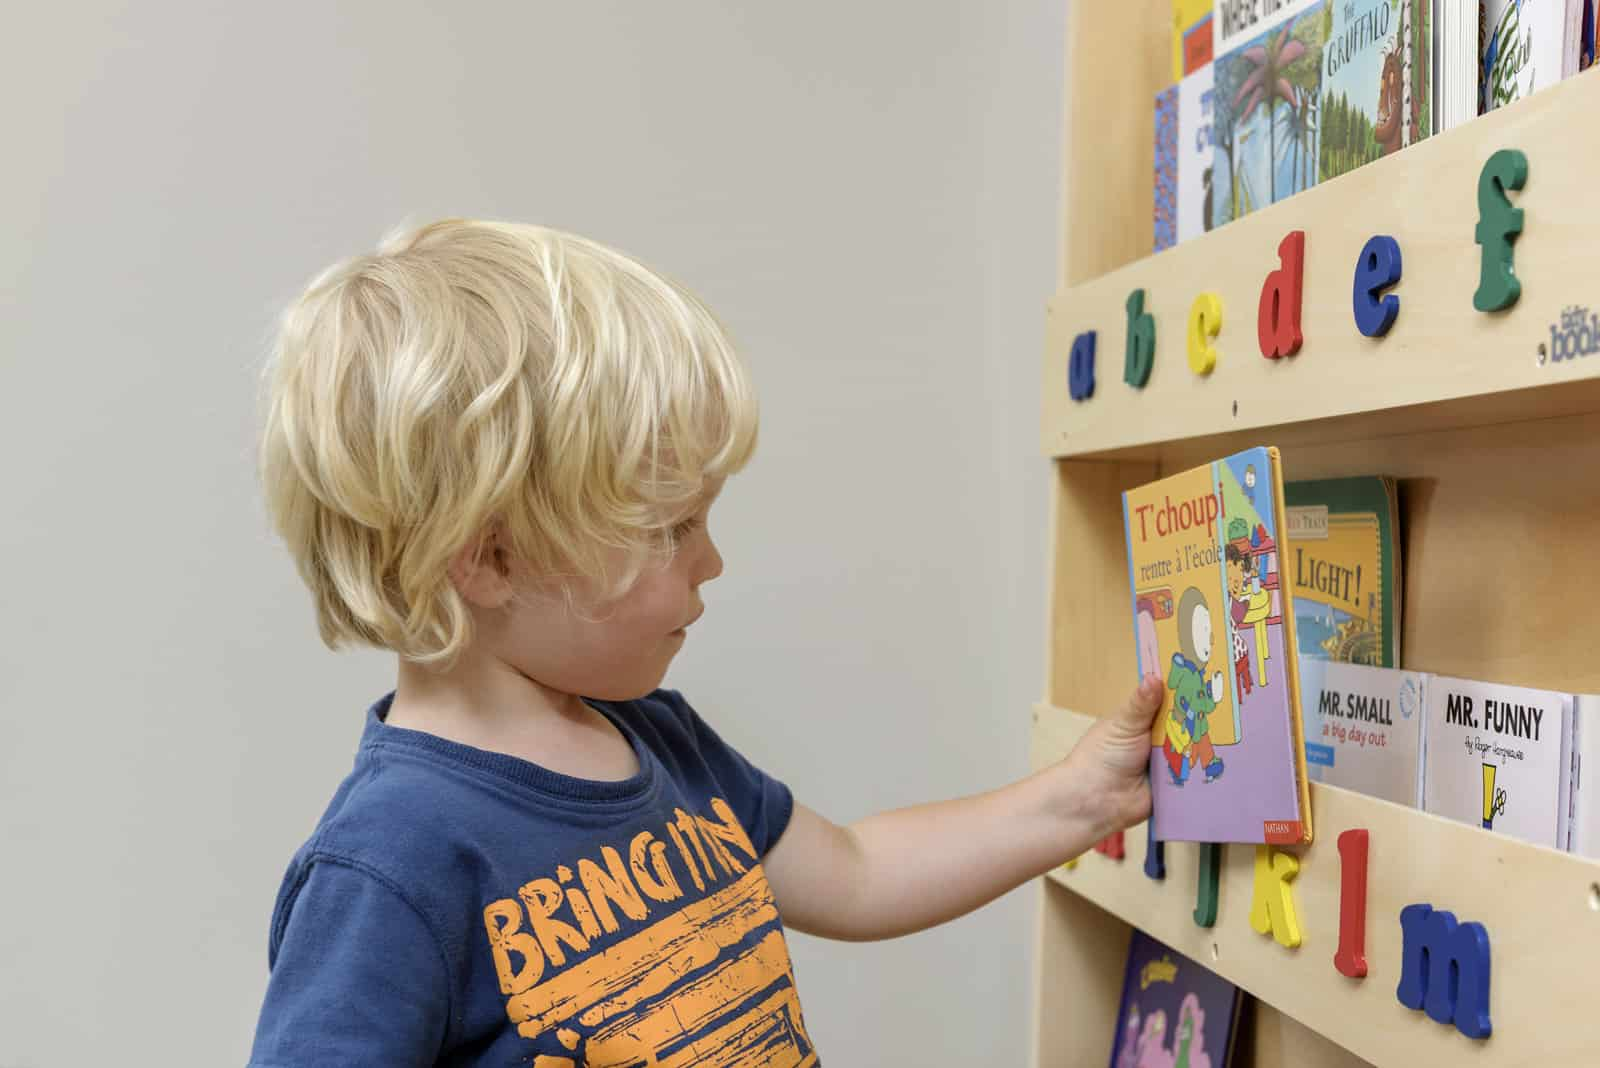 tidy books, bücherregal, montessori, lesen, kindermöbel